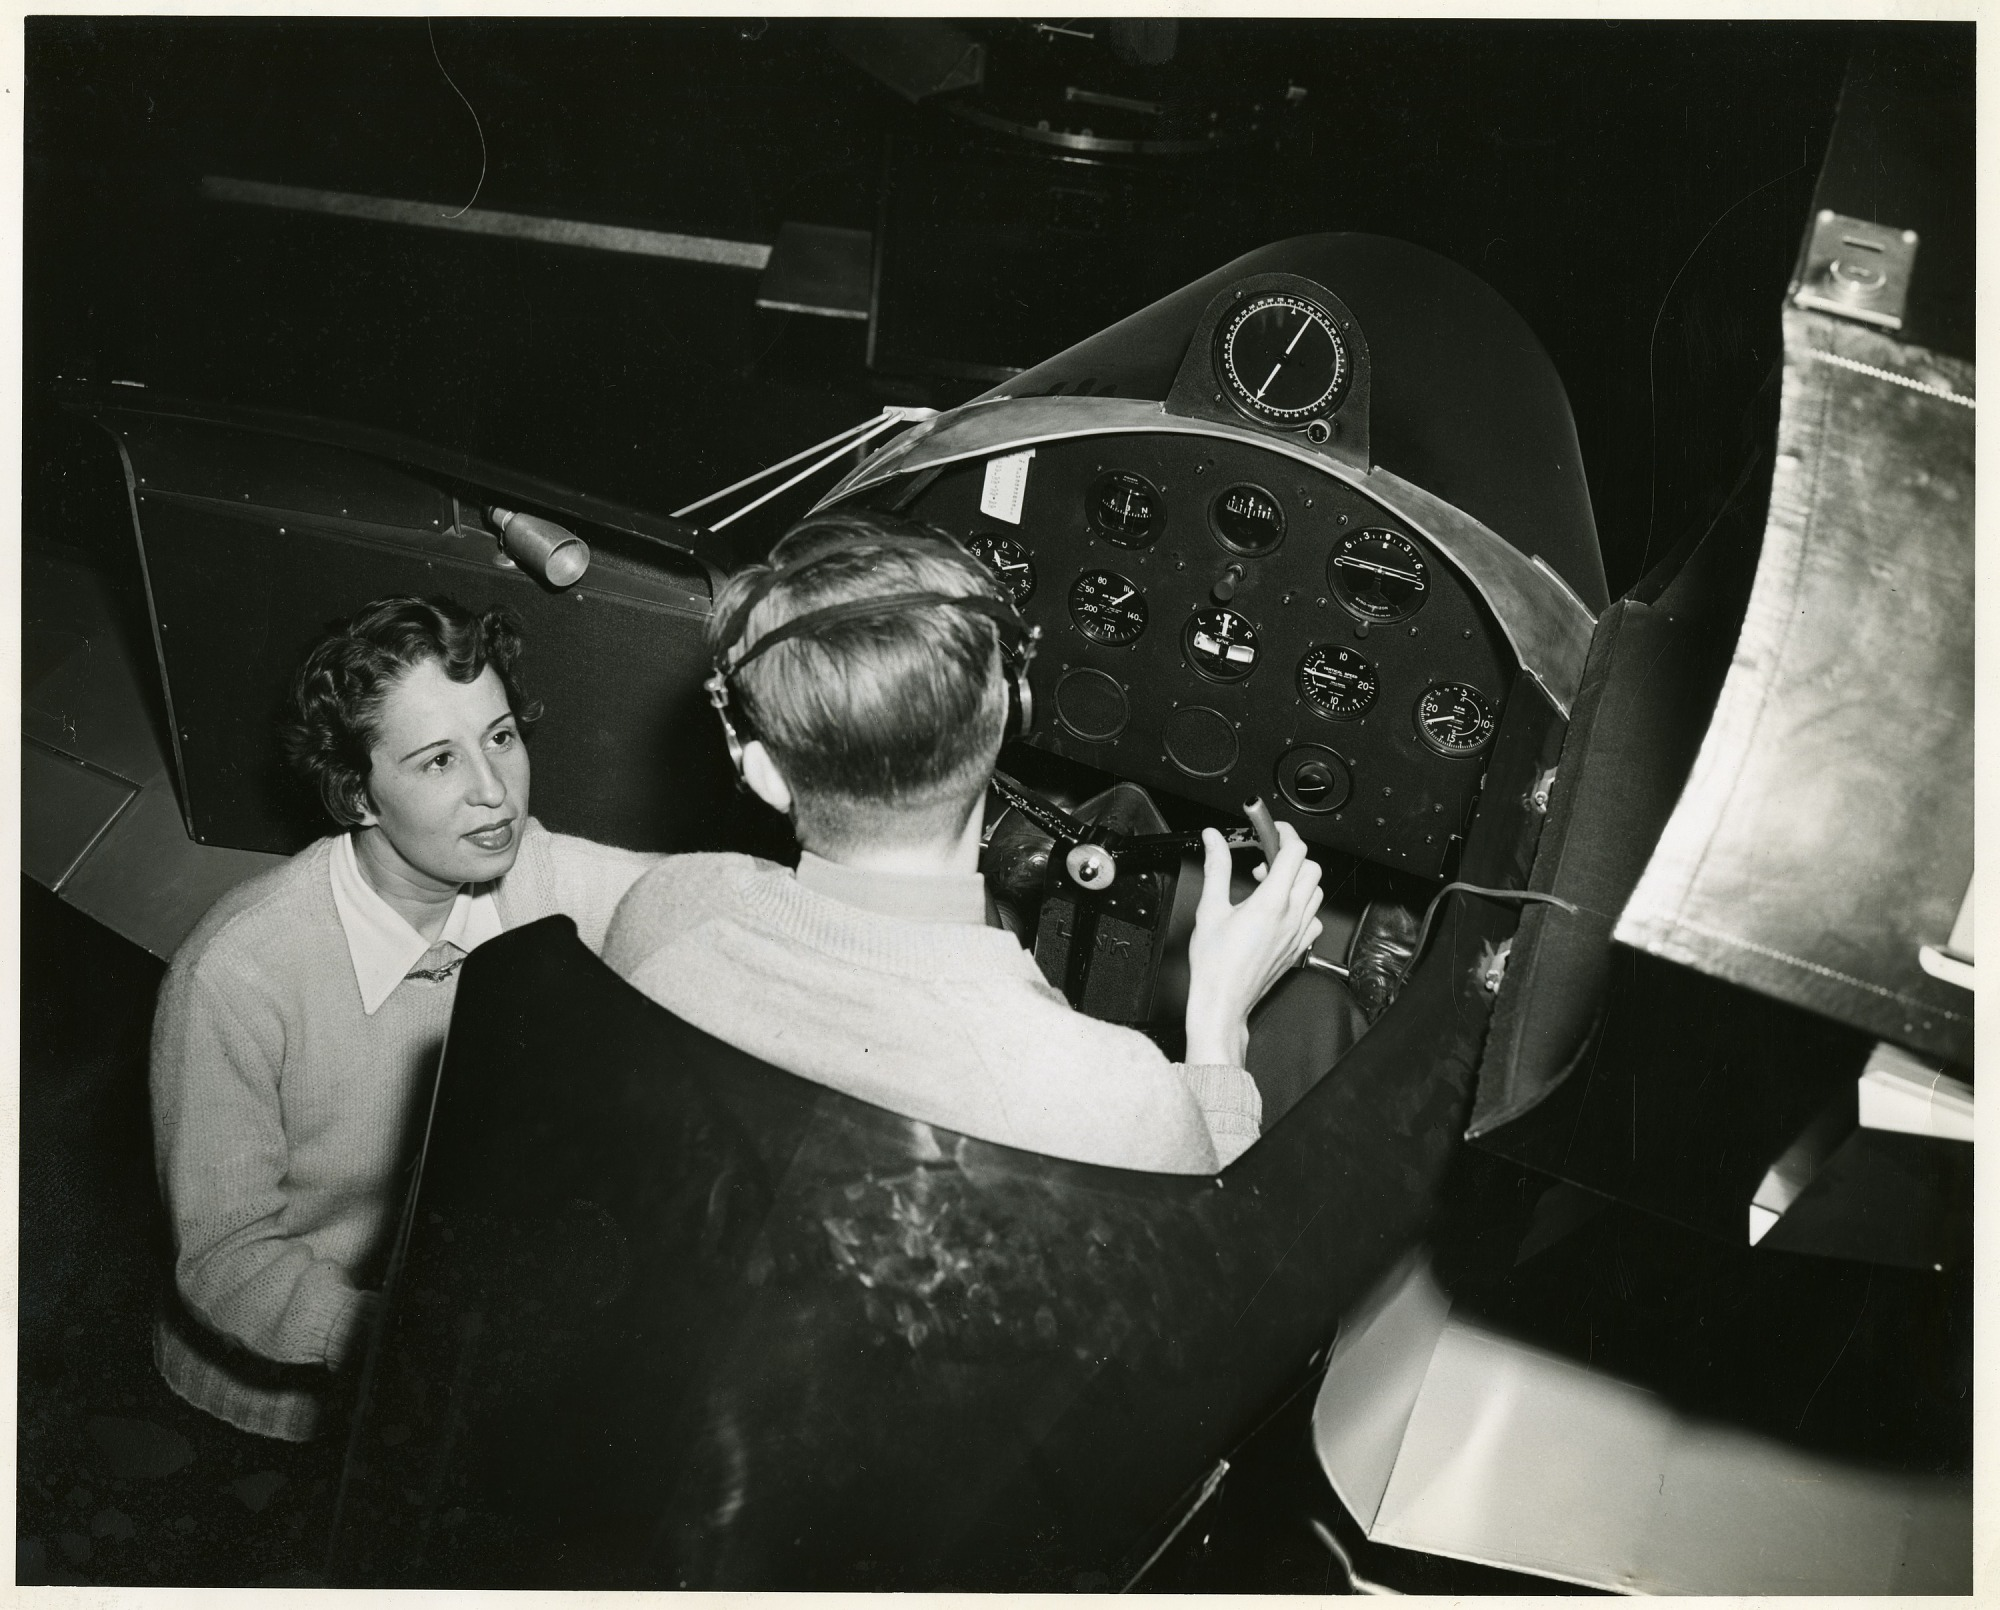 left to right: Anesia Pinheiro Machado (1902-1999) and Pilot Dean E. Robinson, 1948, Smithsonian Institution Archives, SIA Acc. 90-105 [SIA2008-5752].